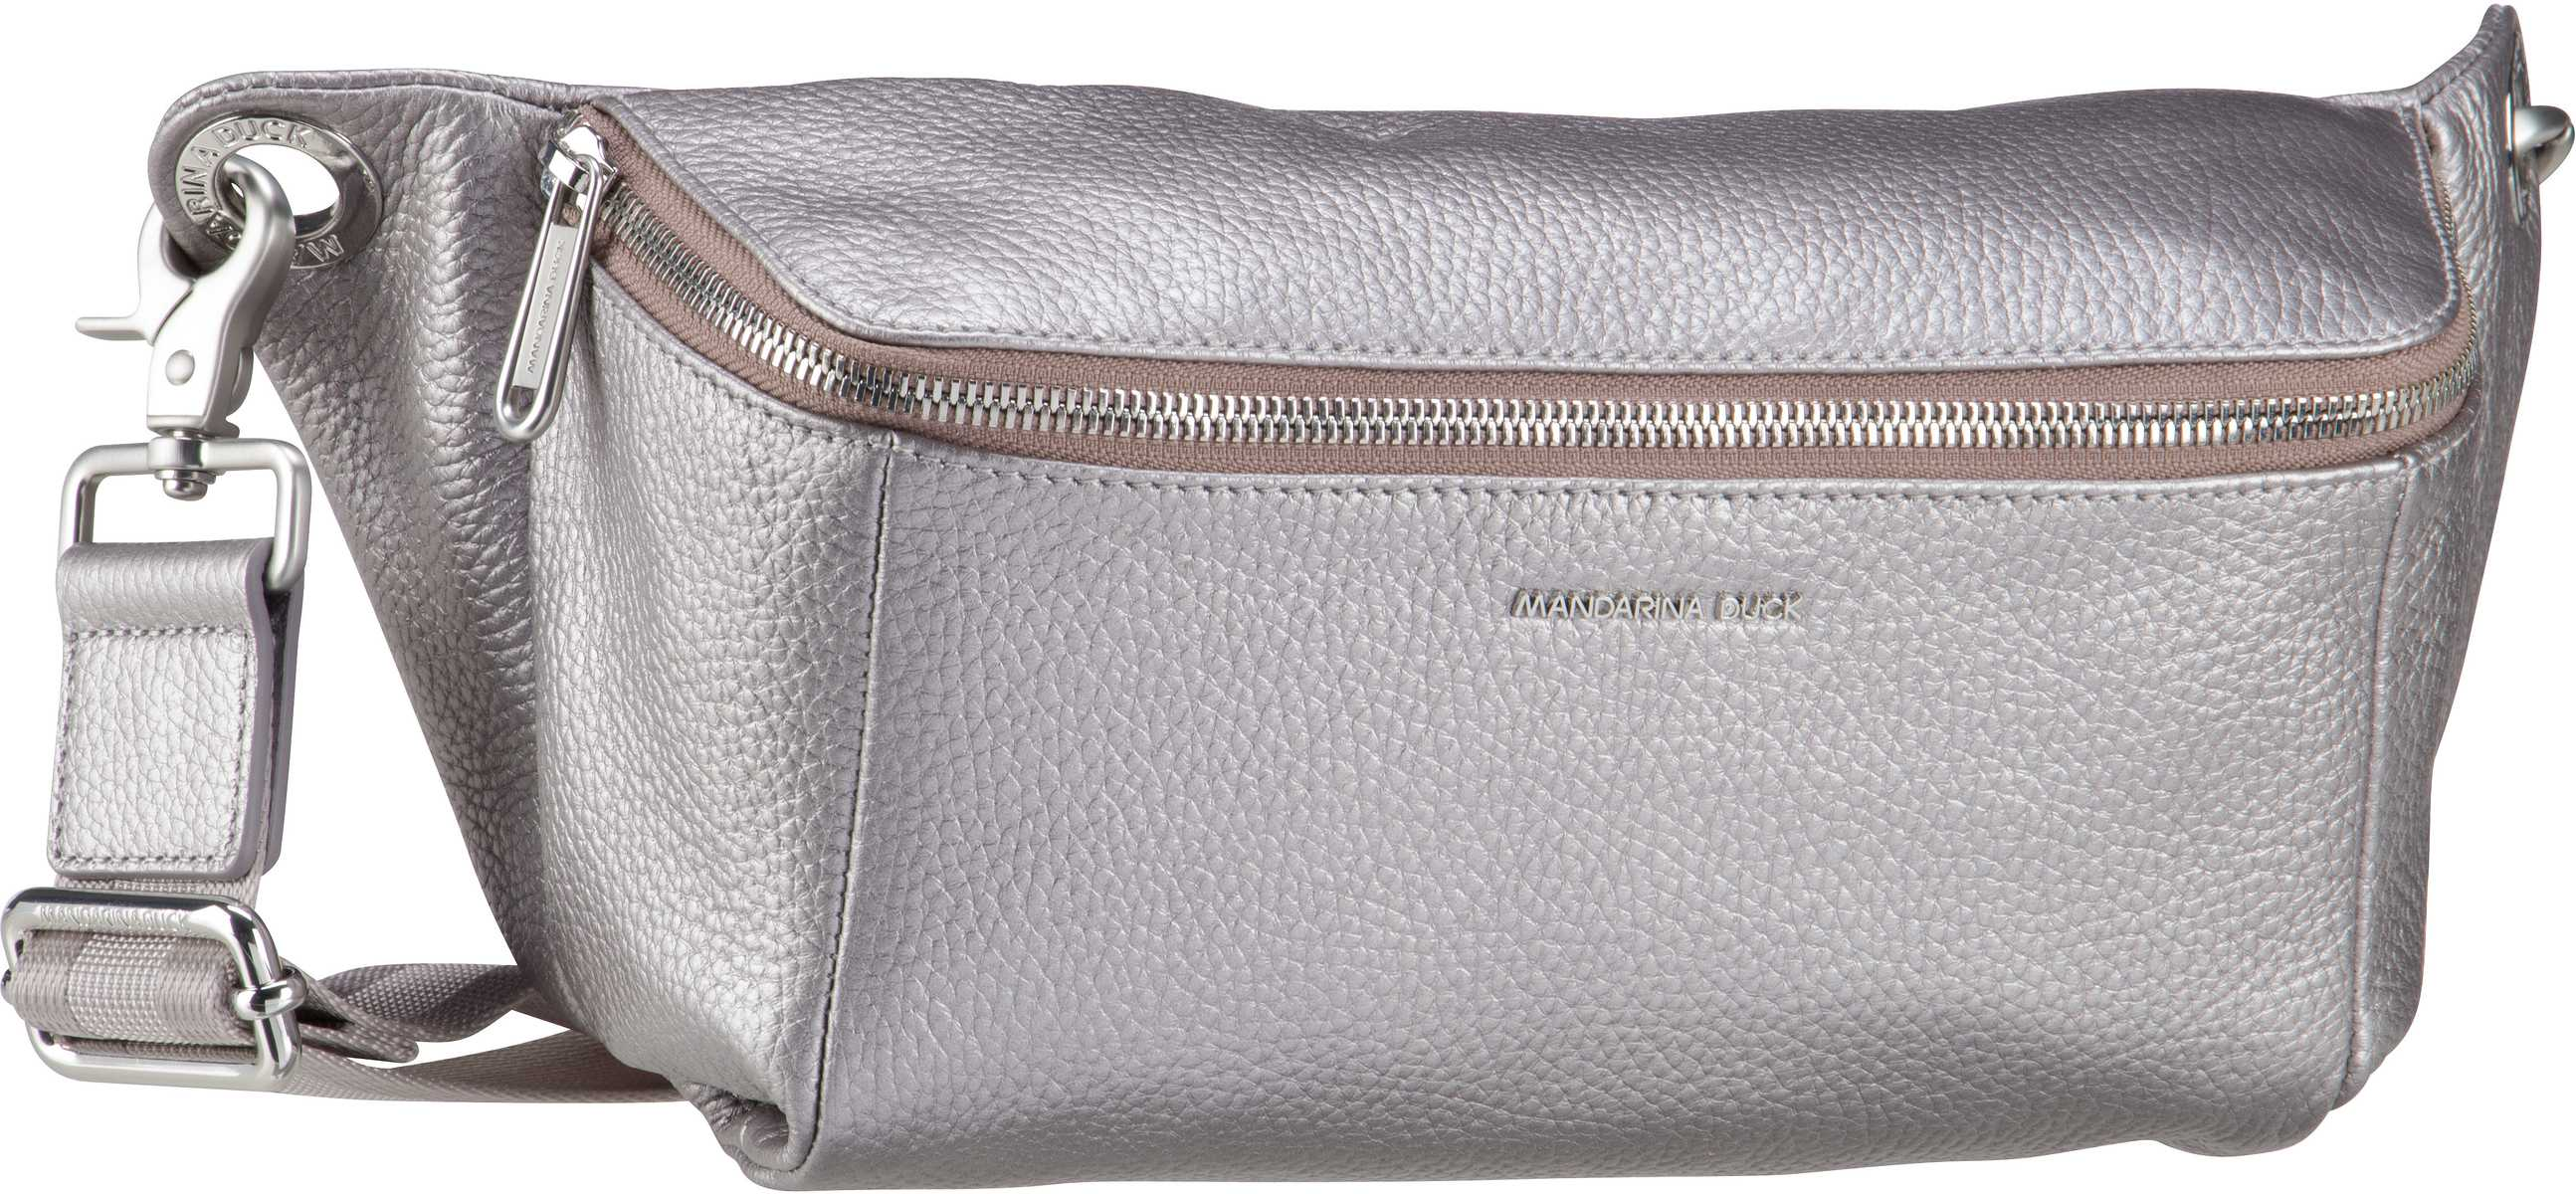 mandarina duck -  Gürteltasche Mellow Leather Lux Crossbody ZLT33 Lavender Aura